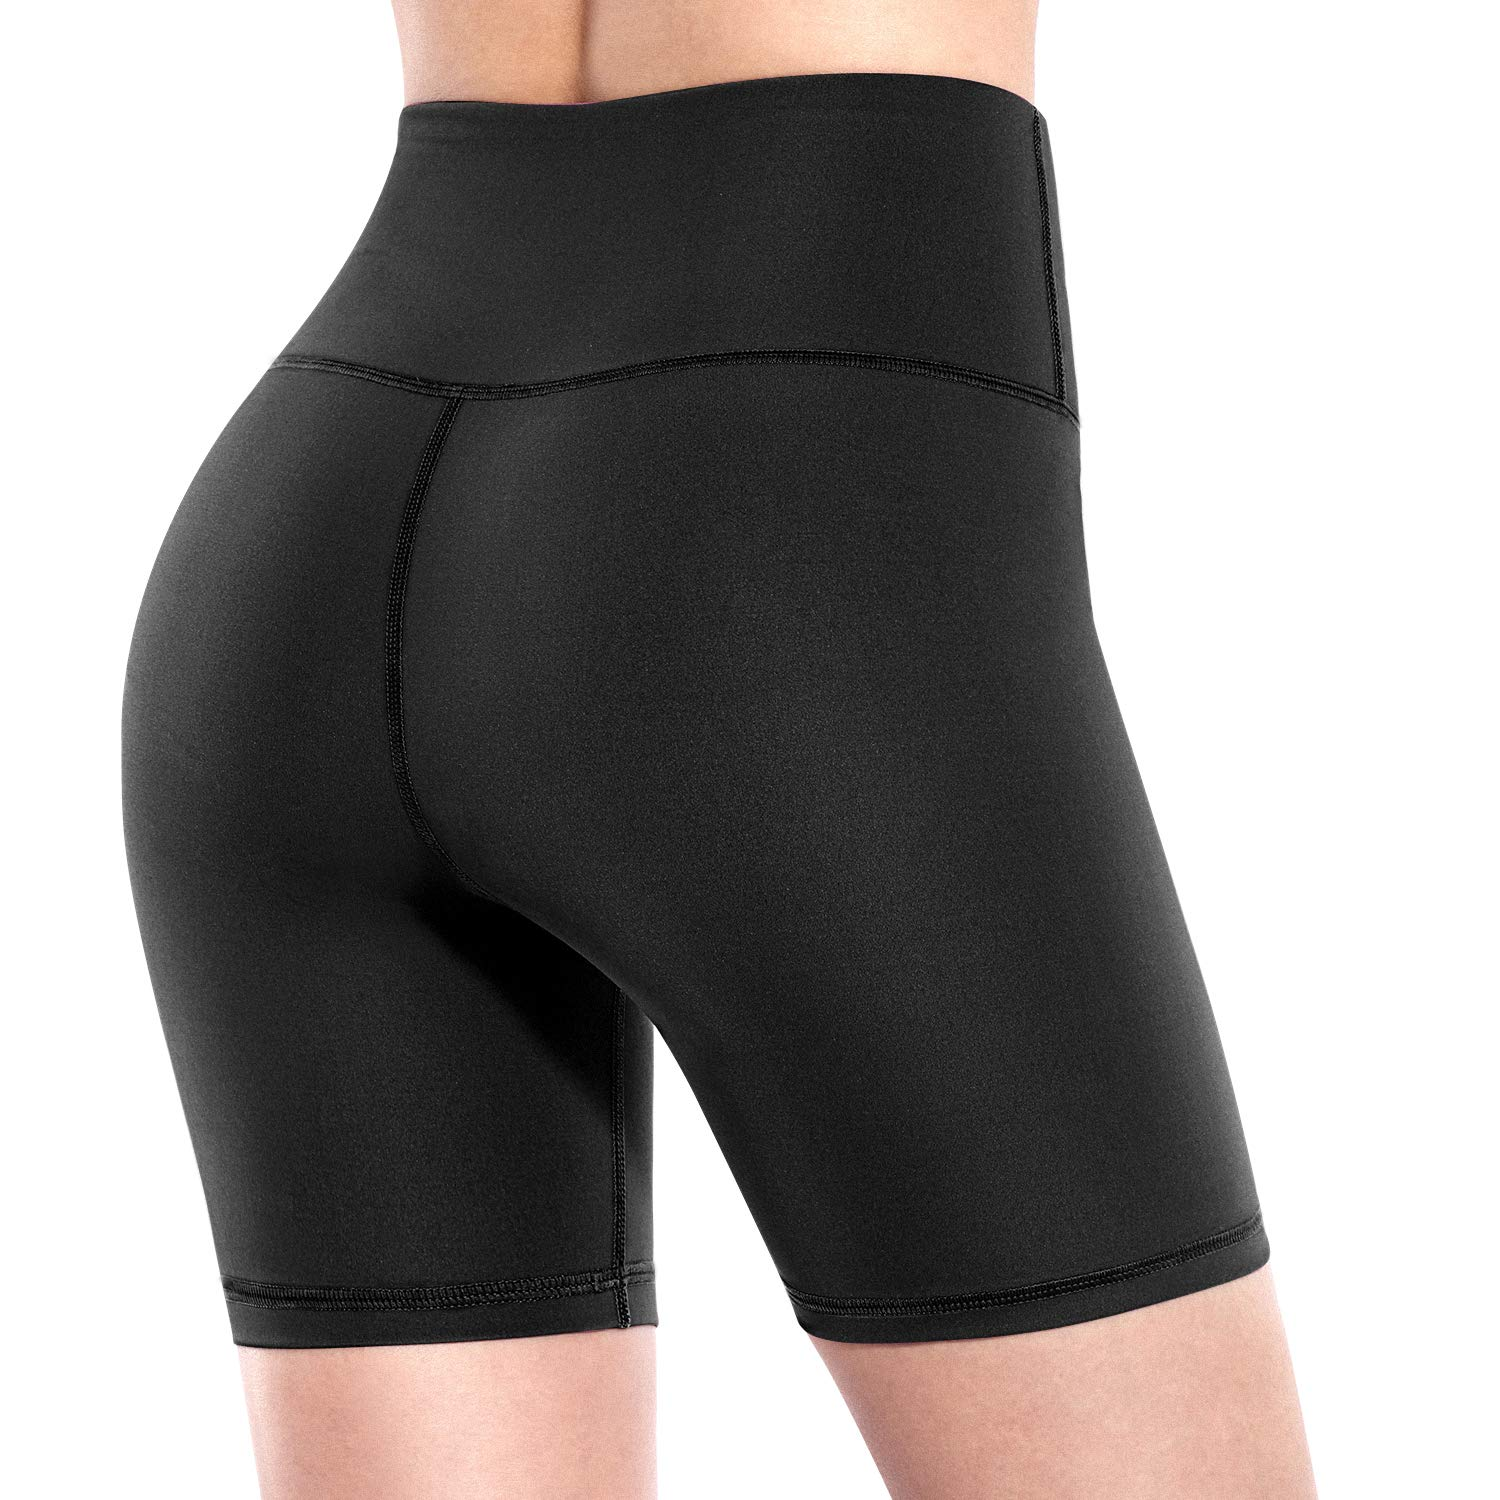 Promover High Waist Yoga Shorts for Women Non See-Through Workout Running Pants (Black, S